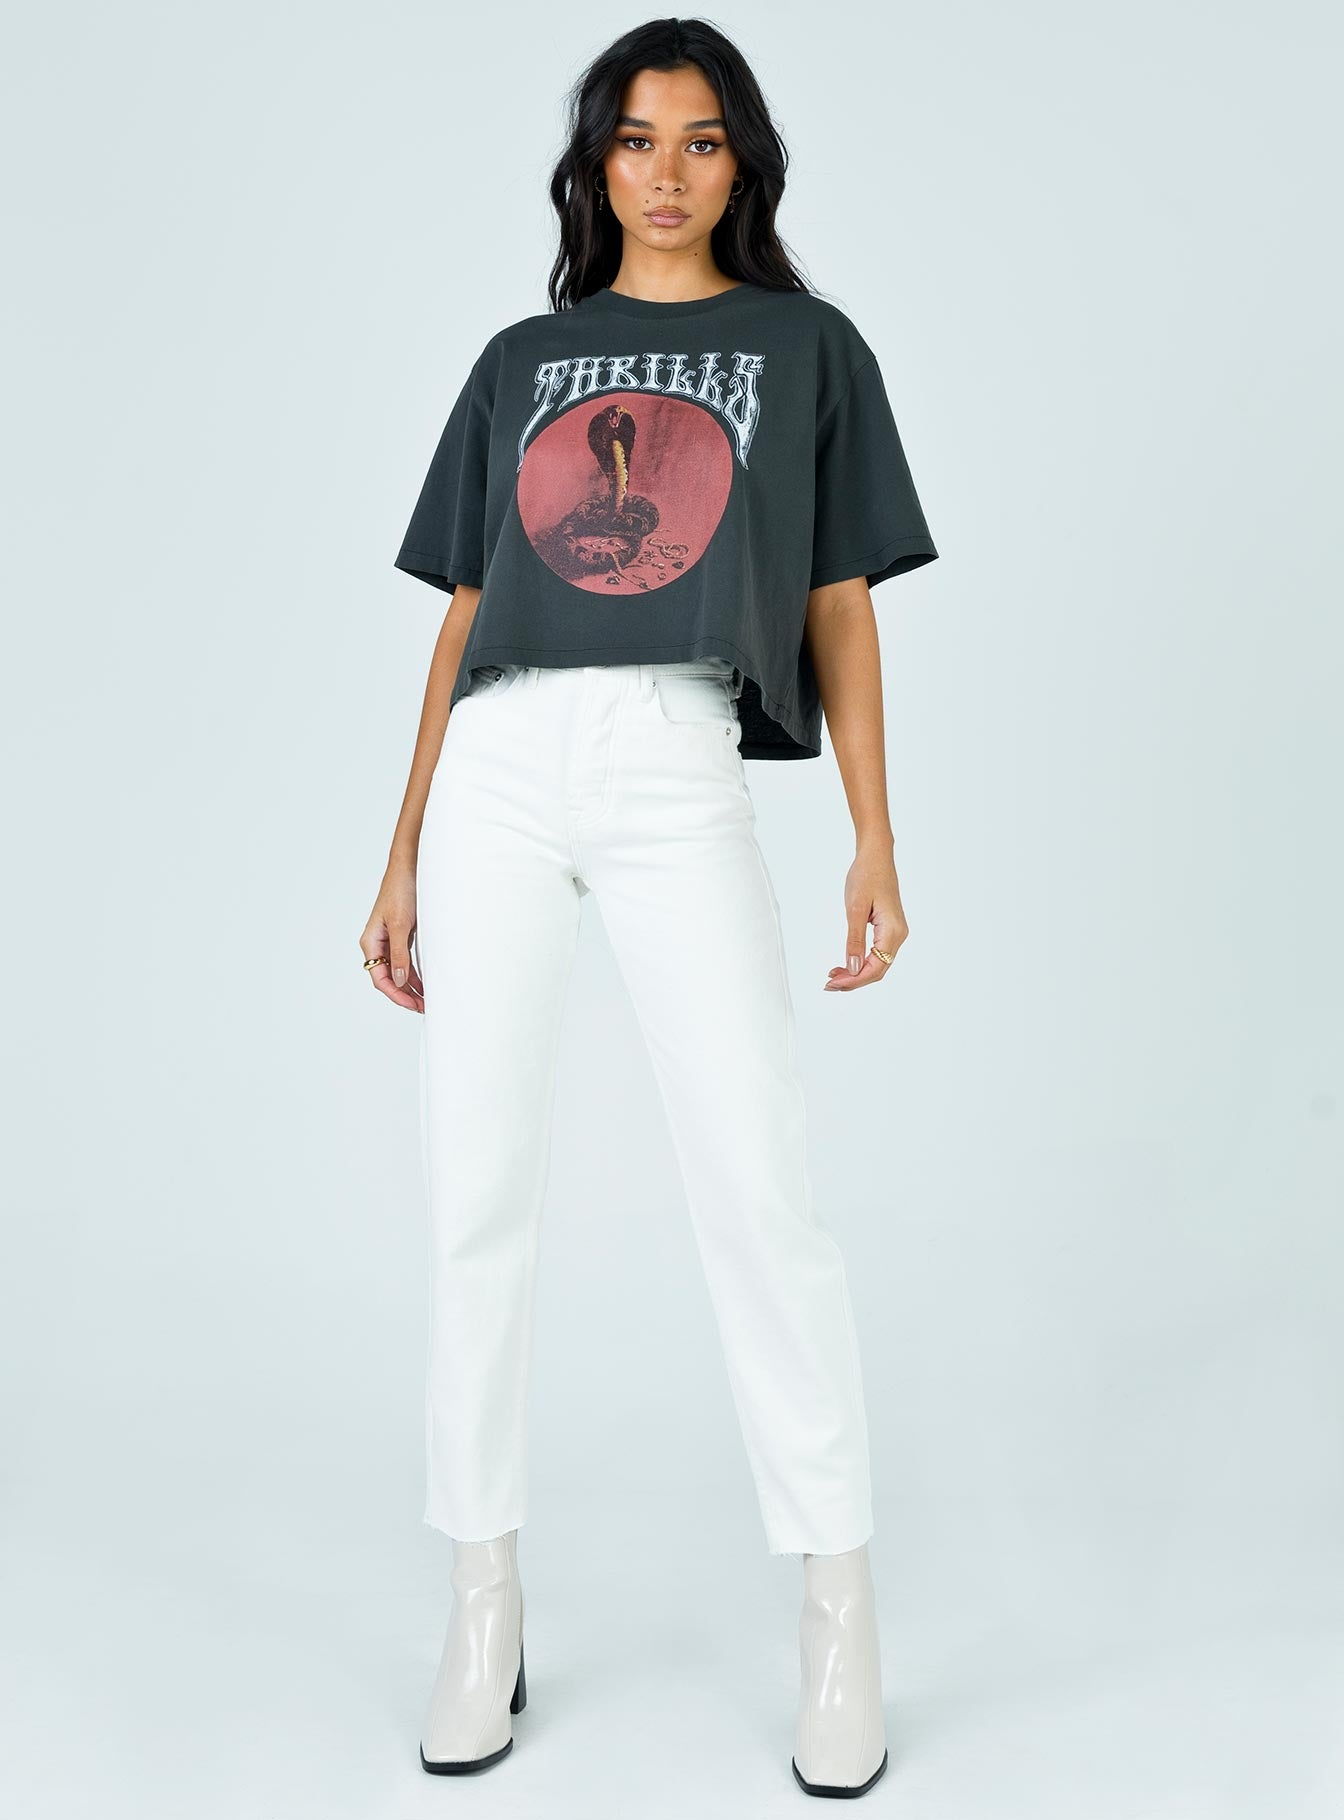 Thrills Hysteria Merch Crop Tee Merch Black